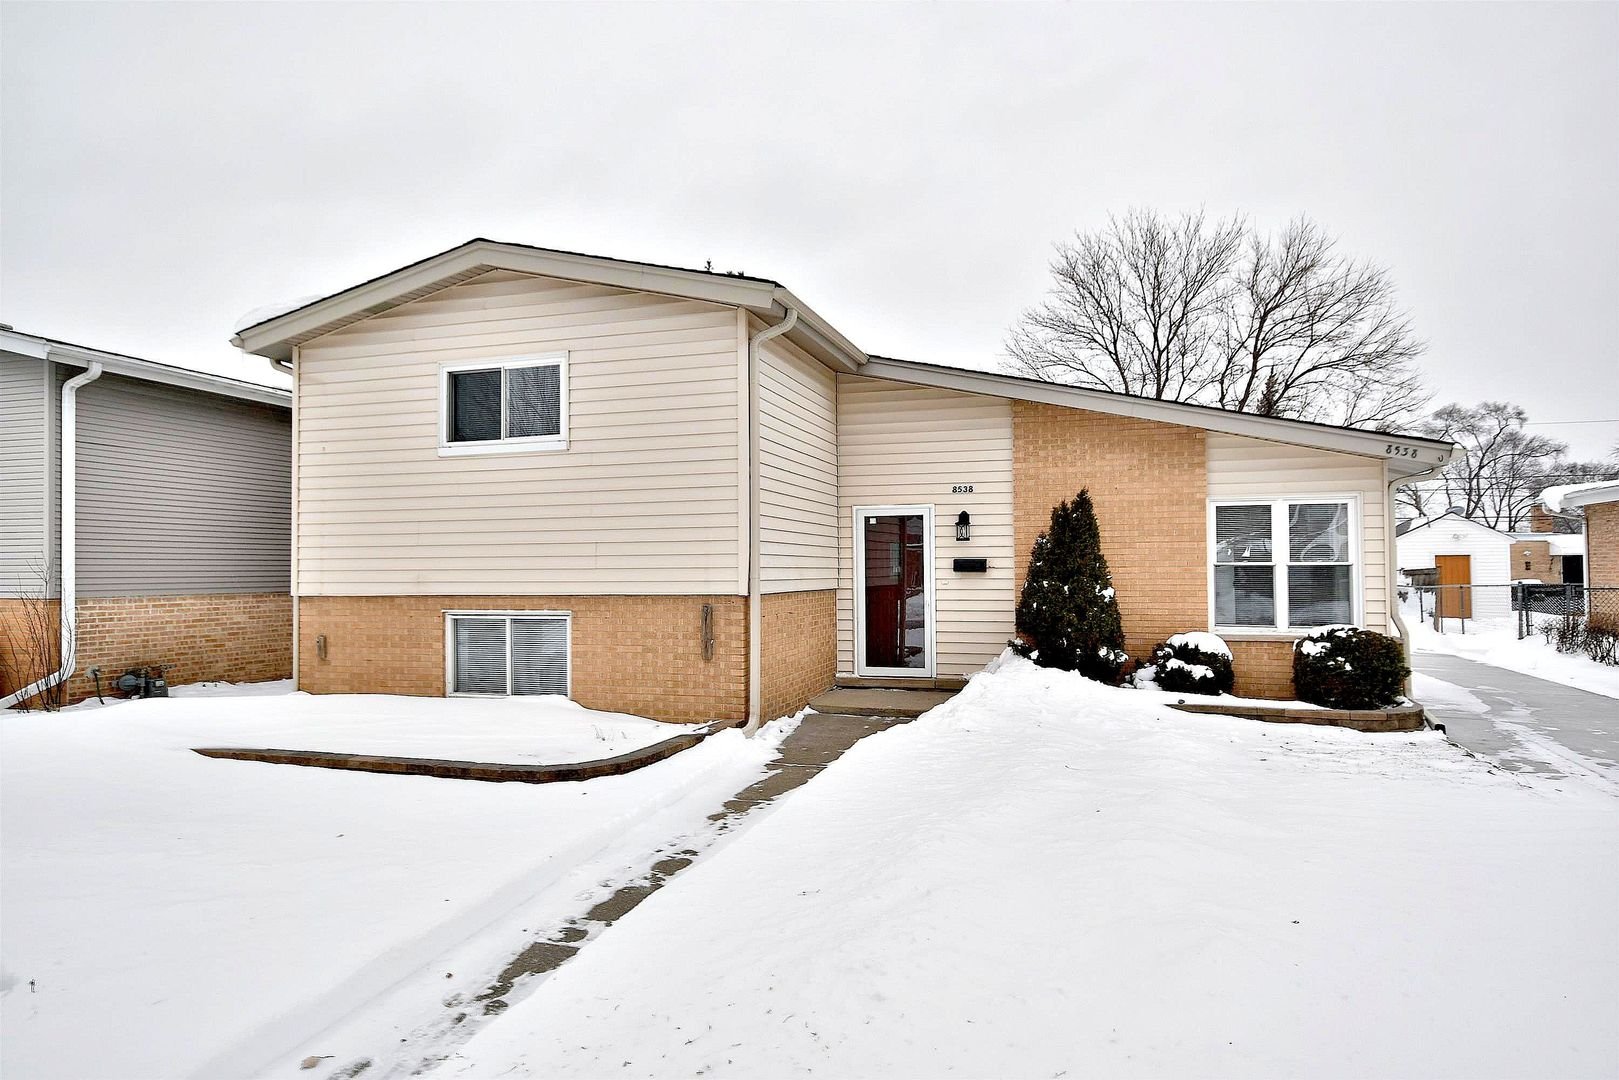 8538 West Madison Drive Niles, IL 60714